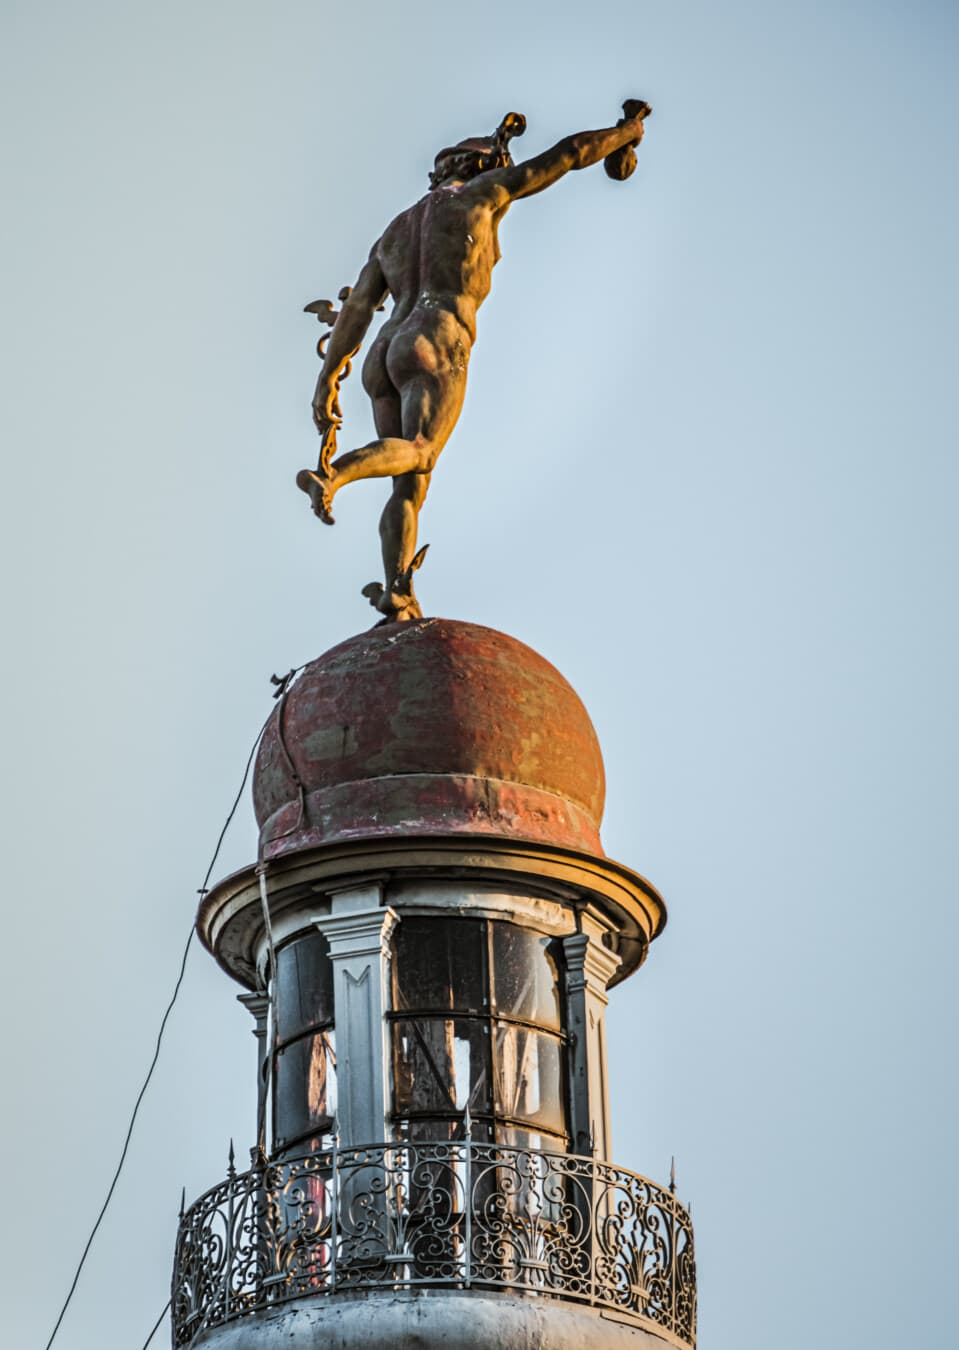 victorian, man, statue, rooftop, roof, bronze, architecture, old, art, outdoors